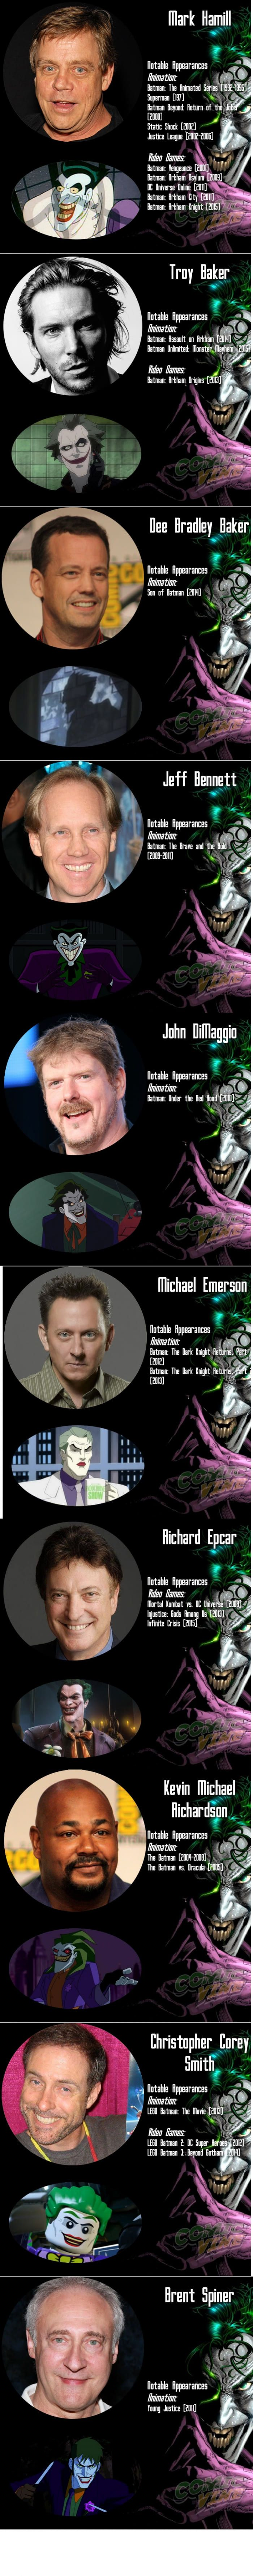 The notable voice actors who played the Joker in animated films and video games